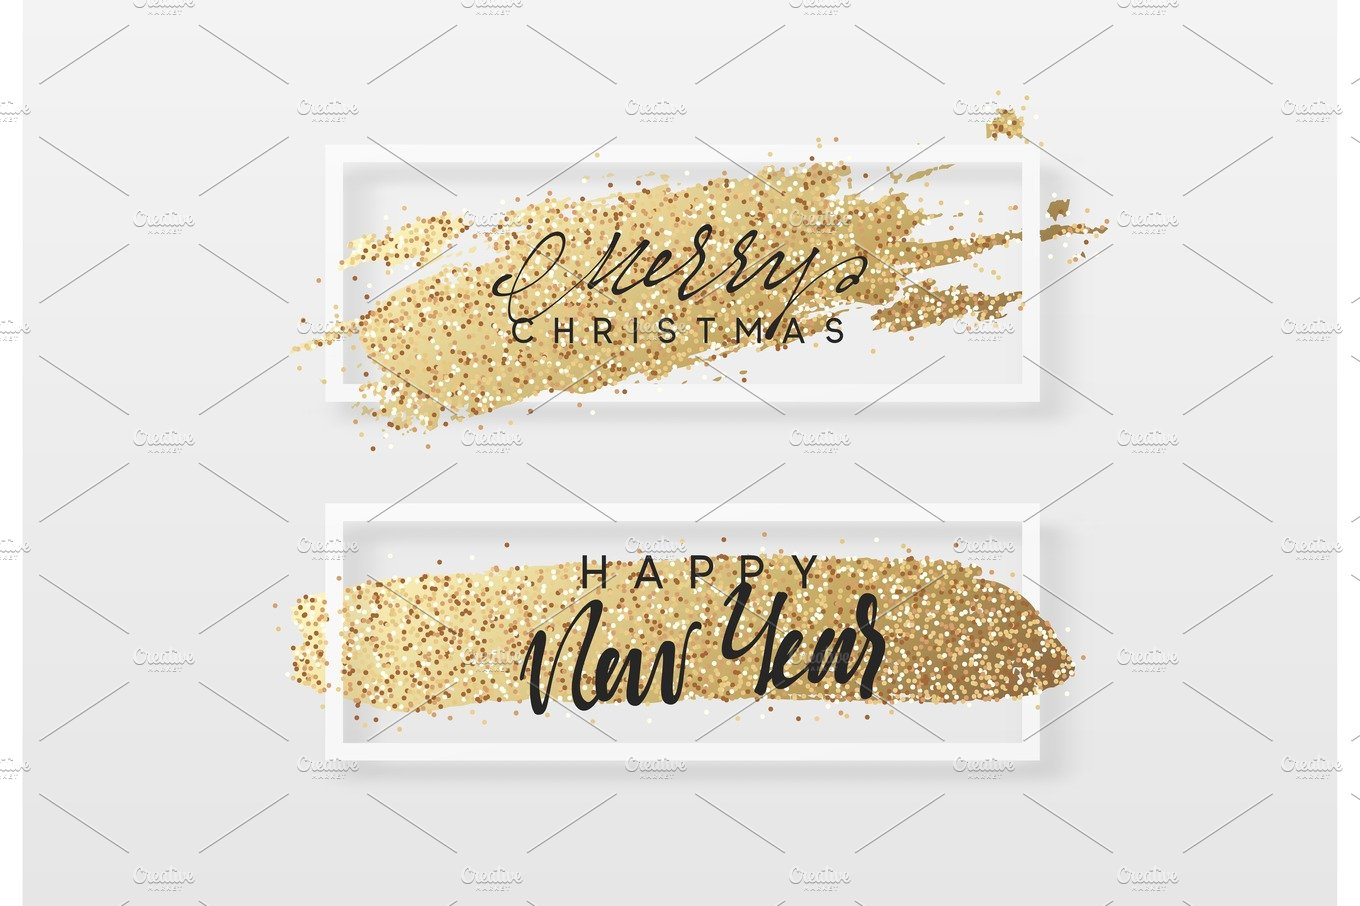 merry christmas and happy new year greeting card with gold glitter illustrations